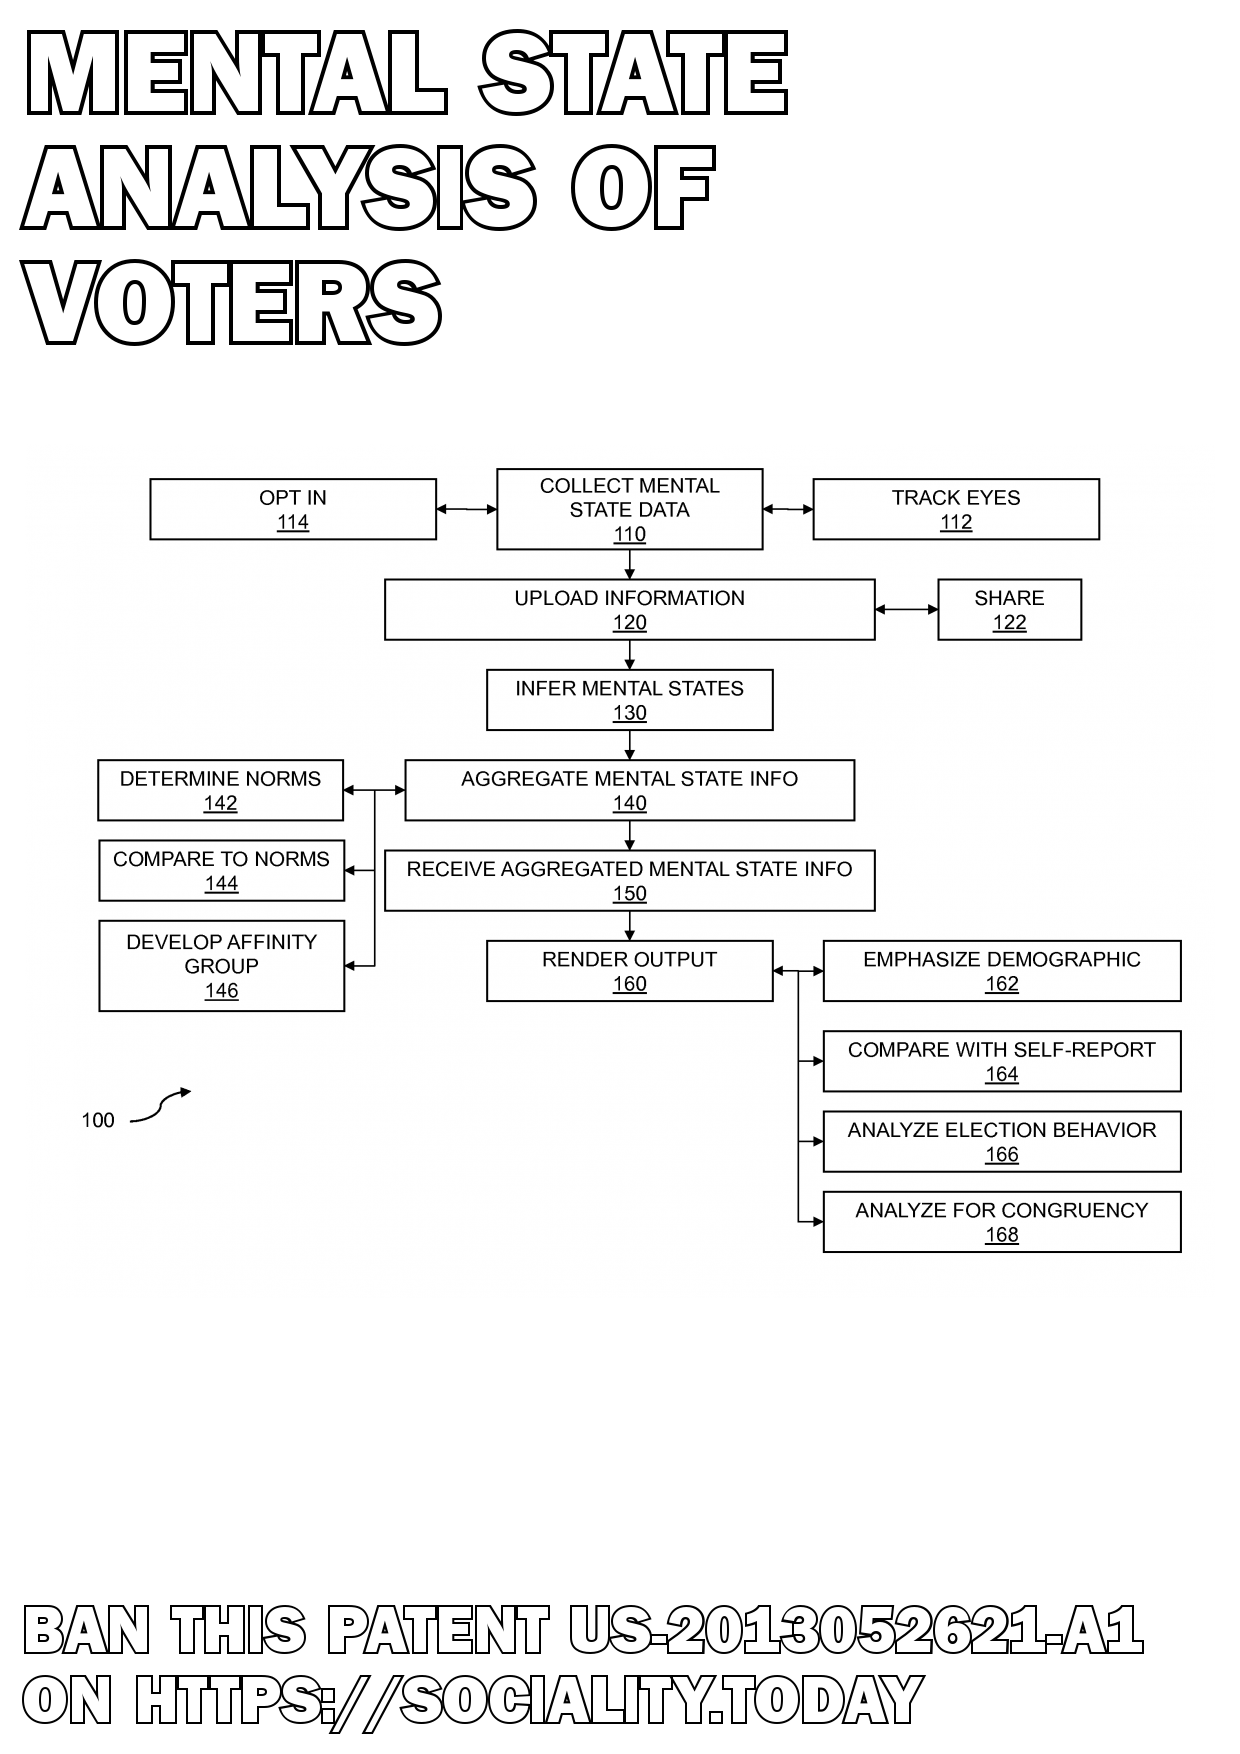 Mental state analysis of voters  - US-2013052621-A1